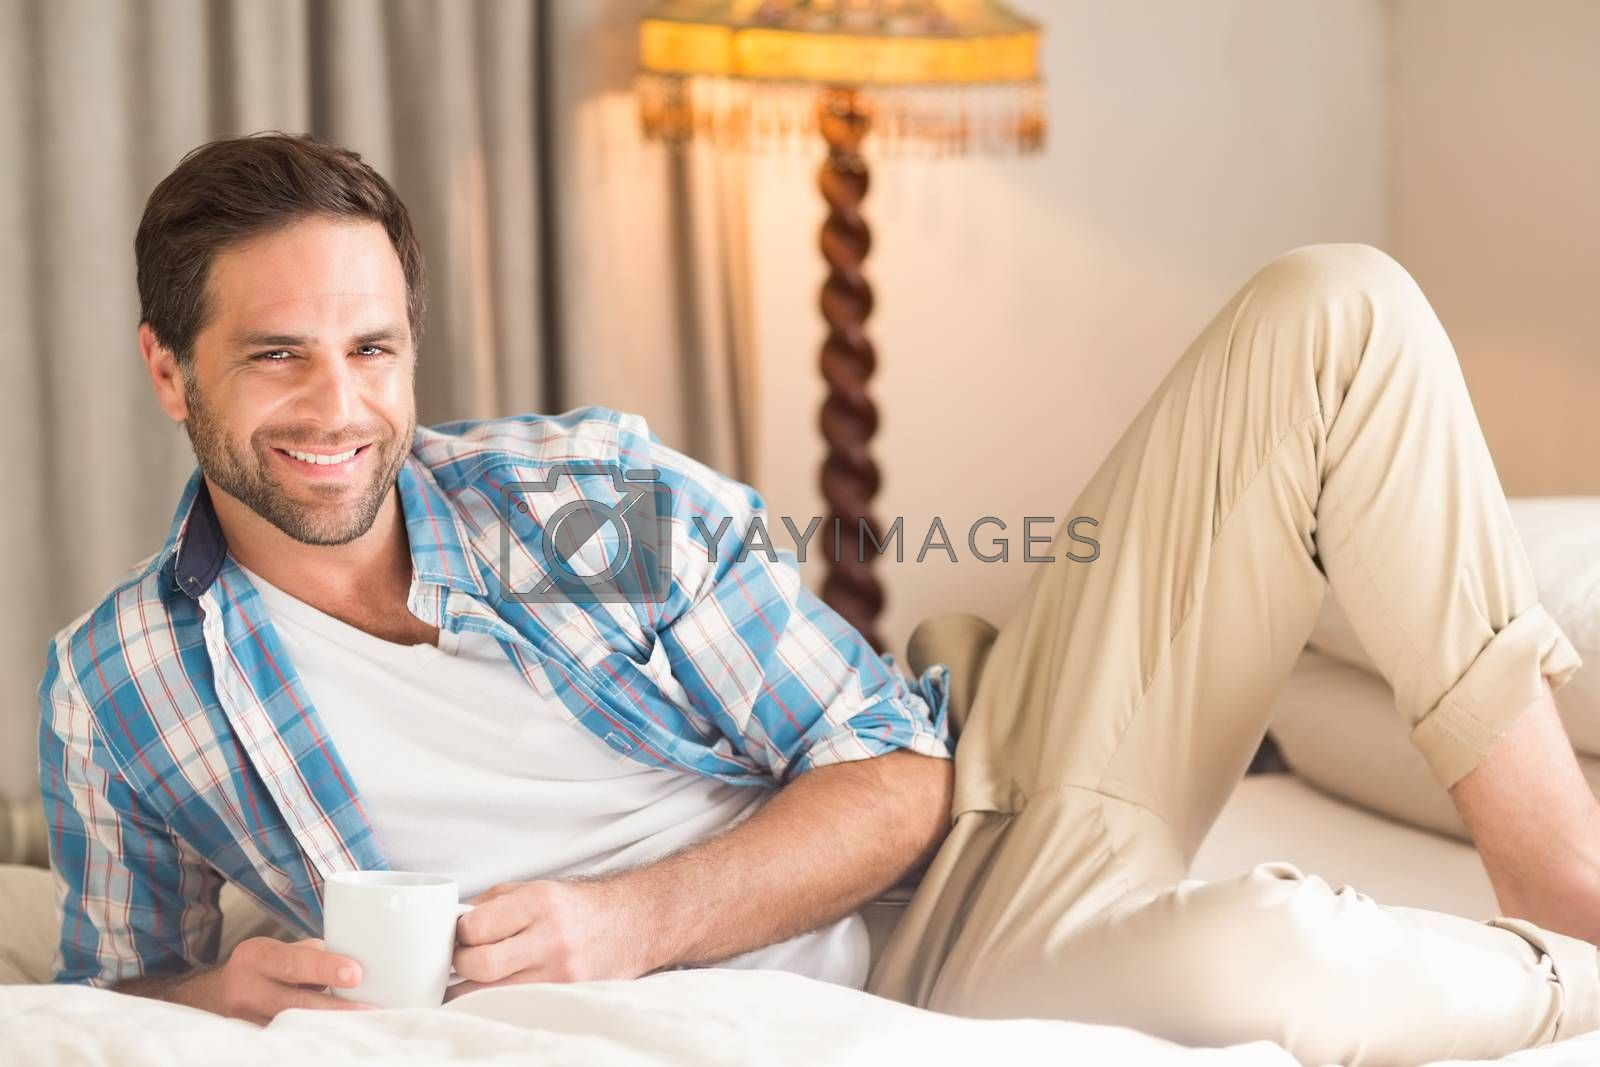 Handsome man relaxing on his bed with hot drink by Wavebreakmedia